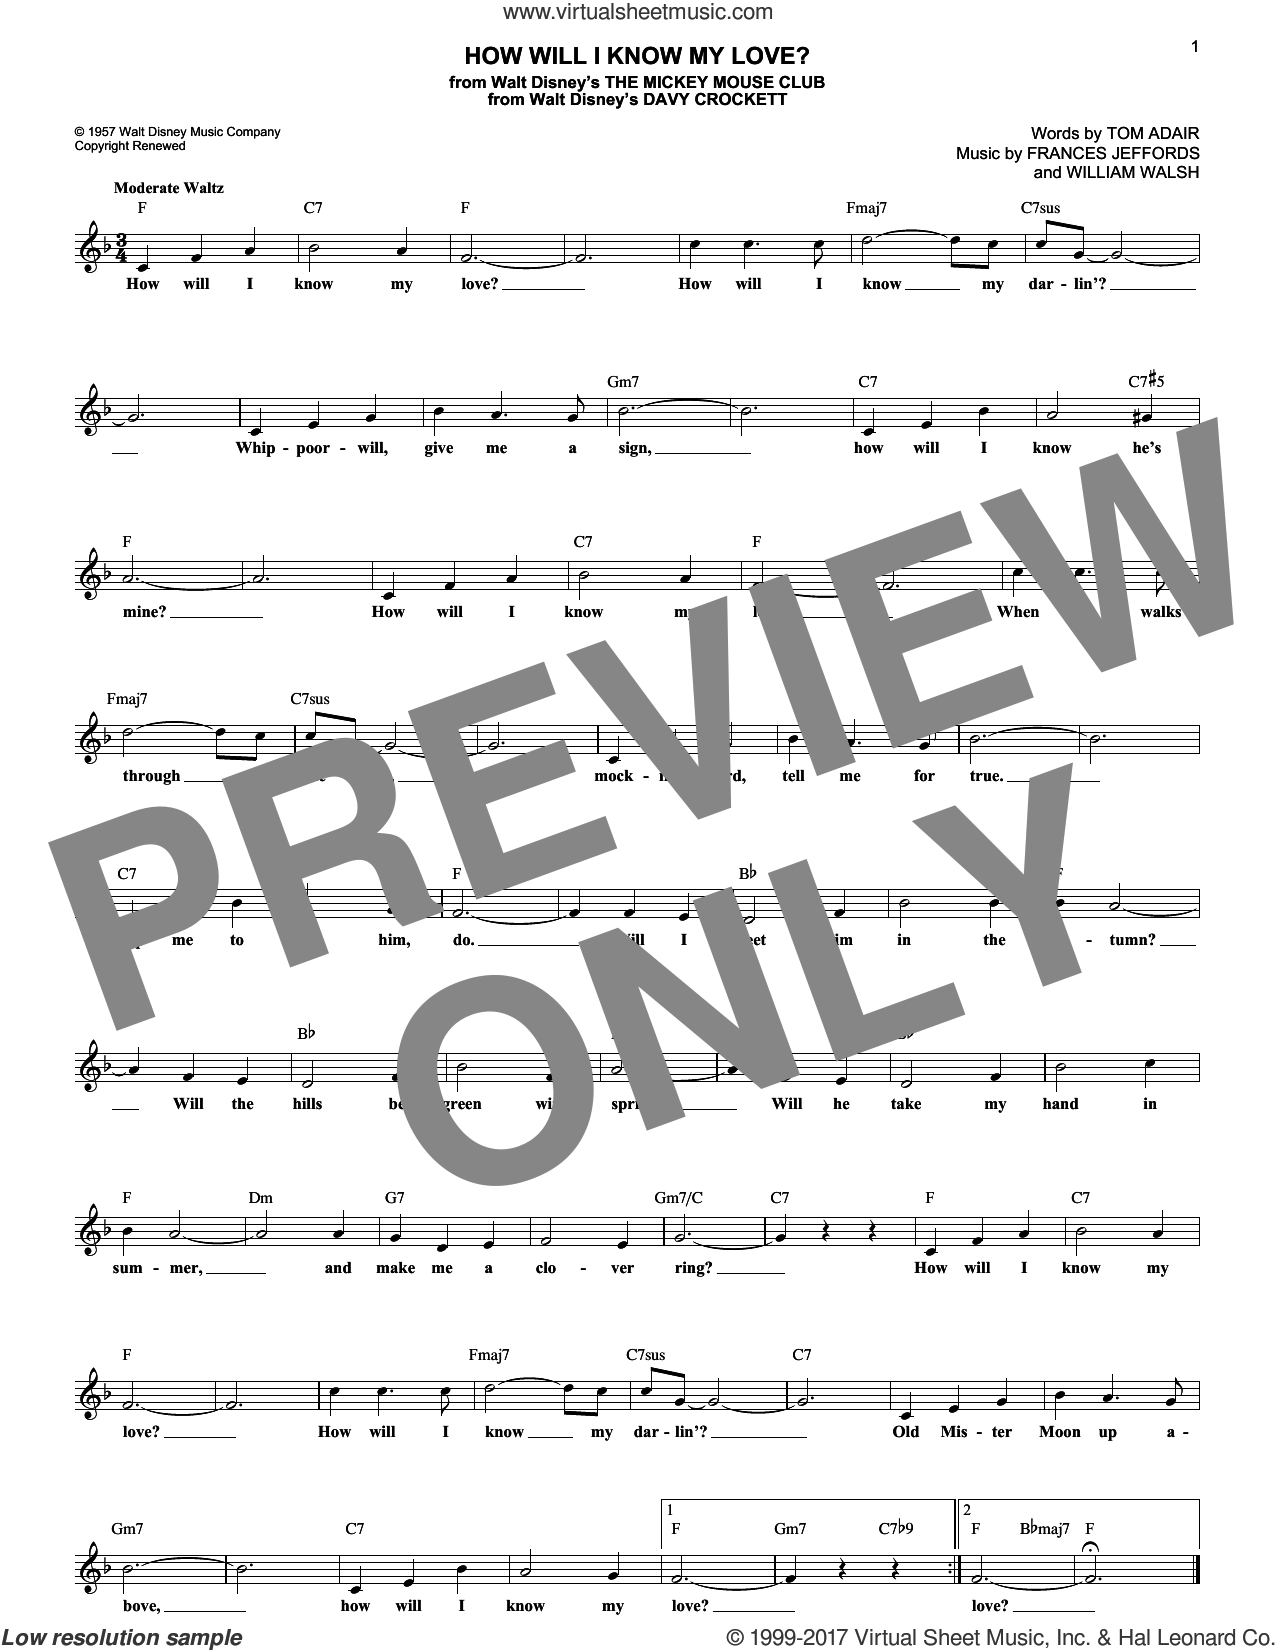 How Will I Know My Love? sheet music for voice and other instruments (fake book) by Tom Adair, Frances Jeffords and William Walsh, intermediate skill level